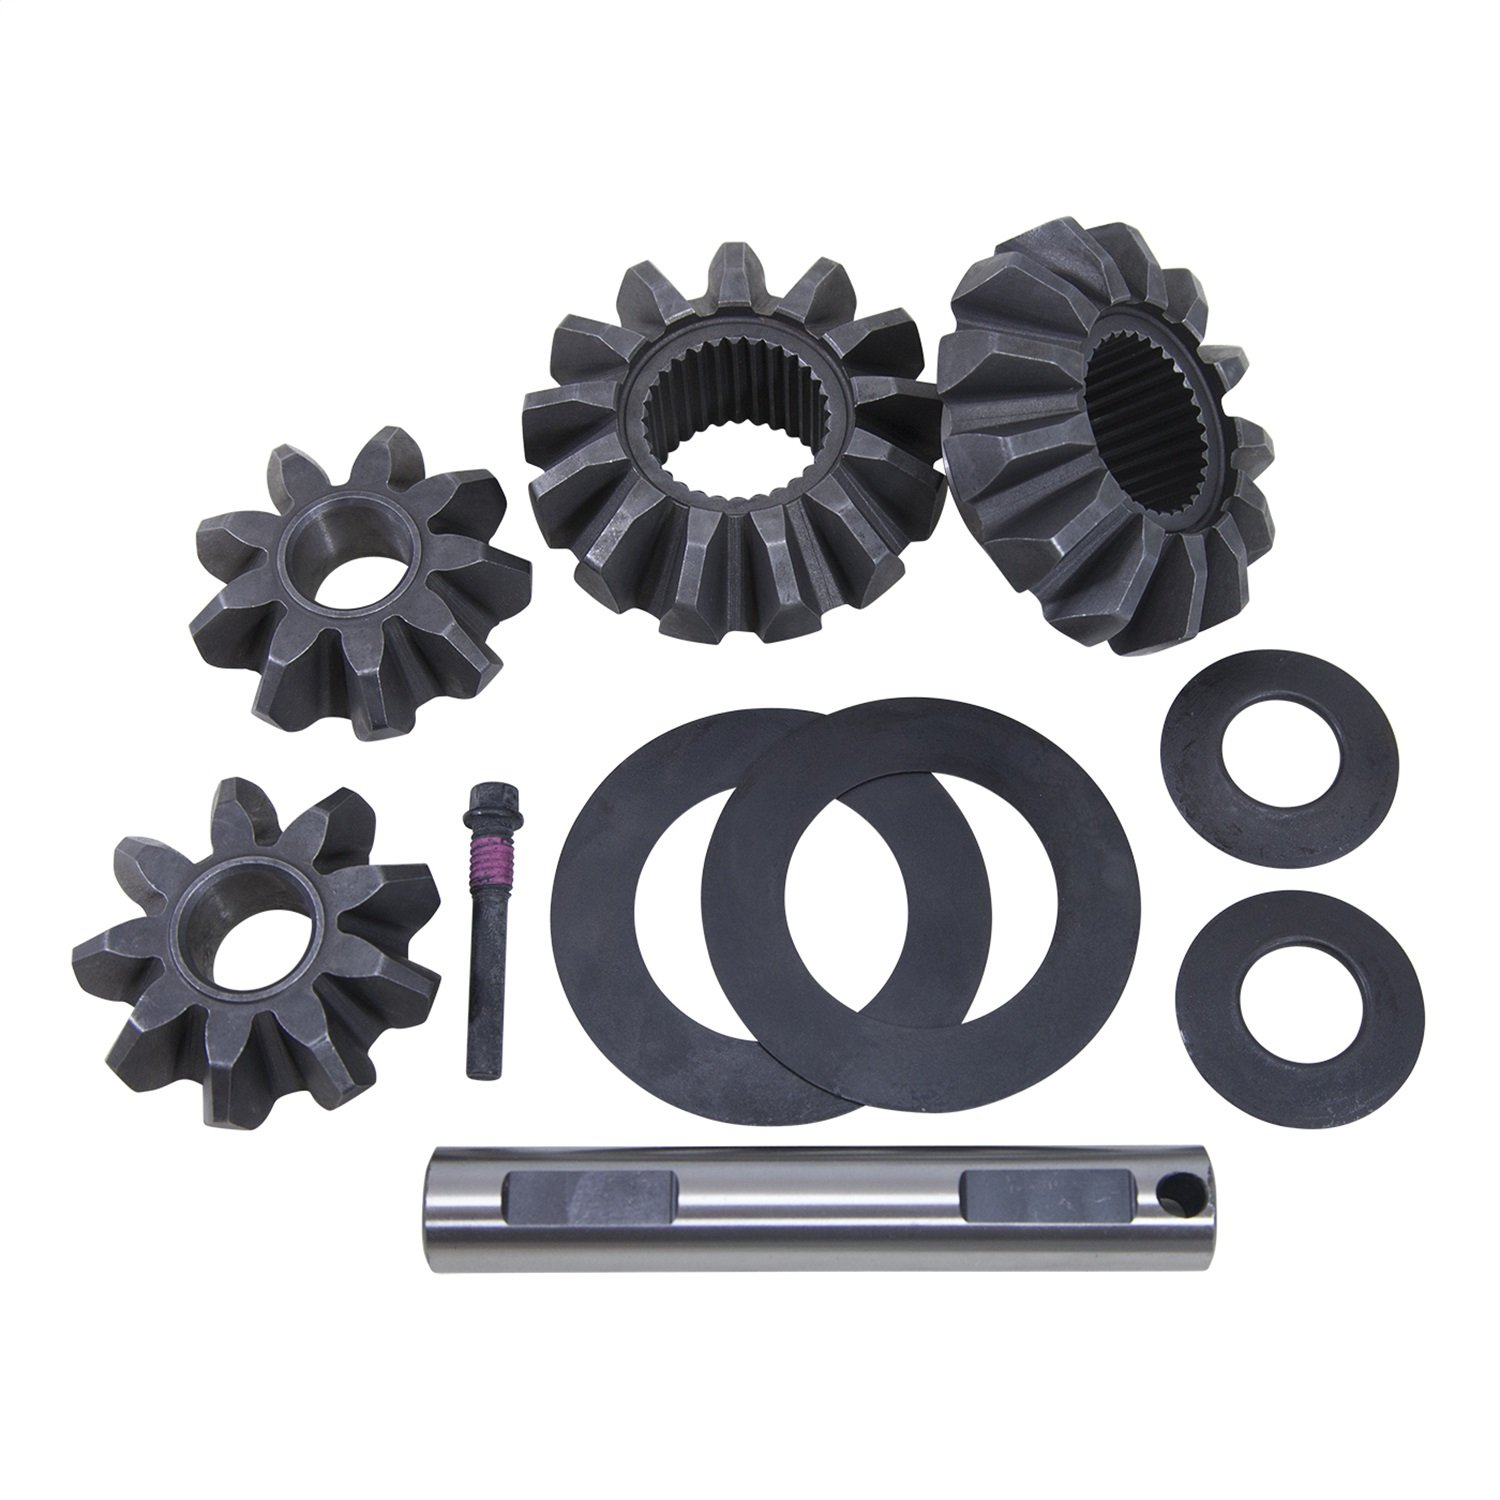 Yukon Gear & Axle (YPKGM8.6-S-30V3) Standard Open Spider Gear Set for GM 8.6 Differential